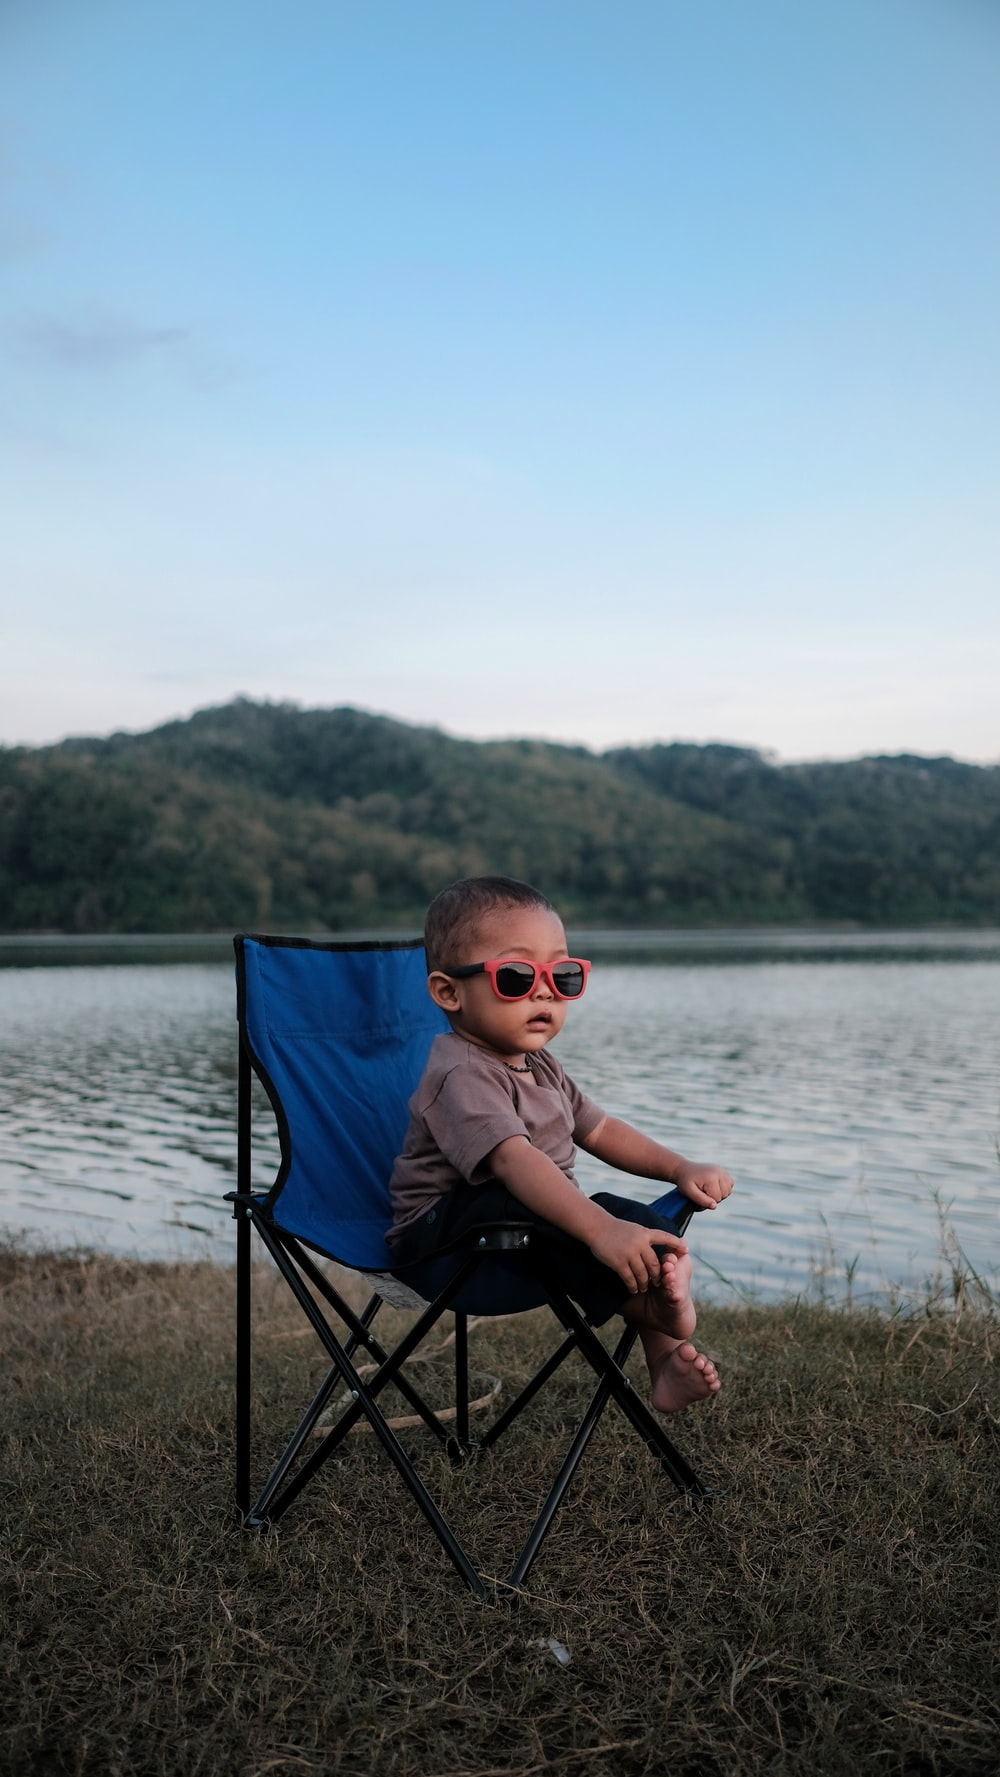 boy in gray shirt sitting on blue camping chair near body of water